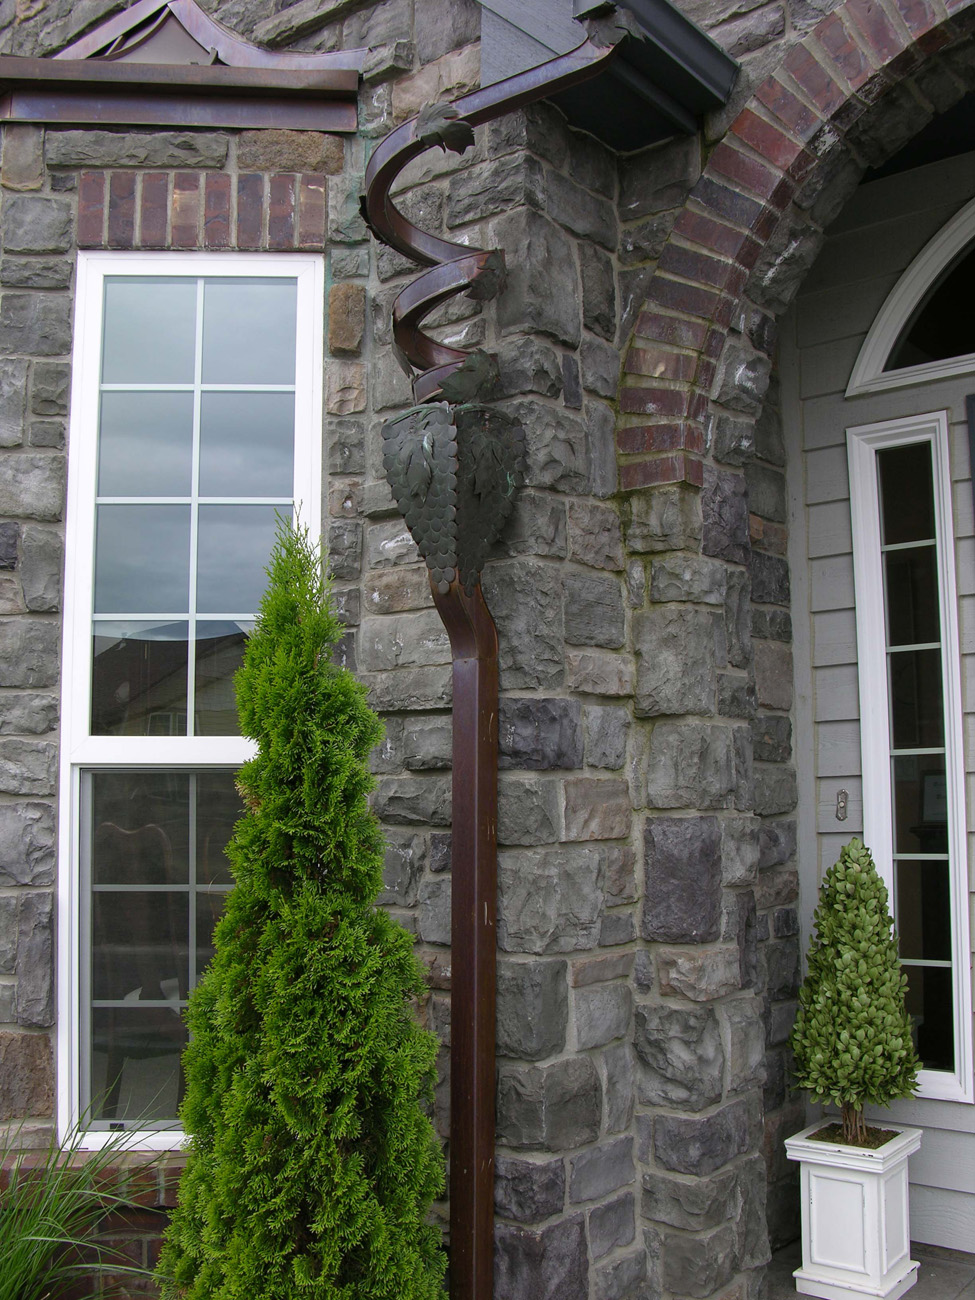 Grapevine art spout